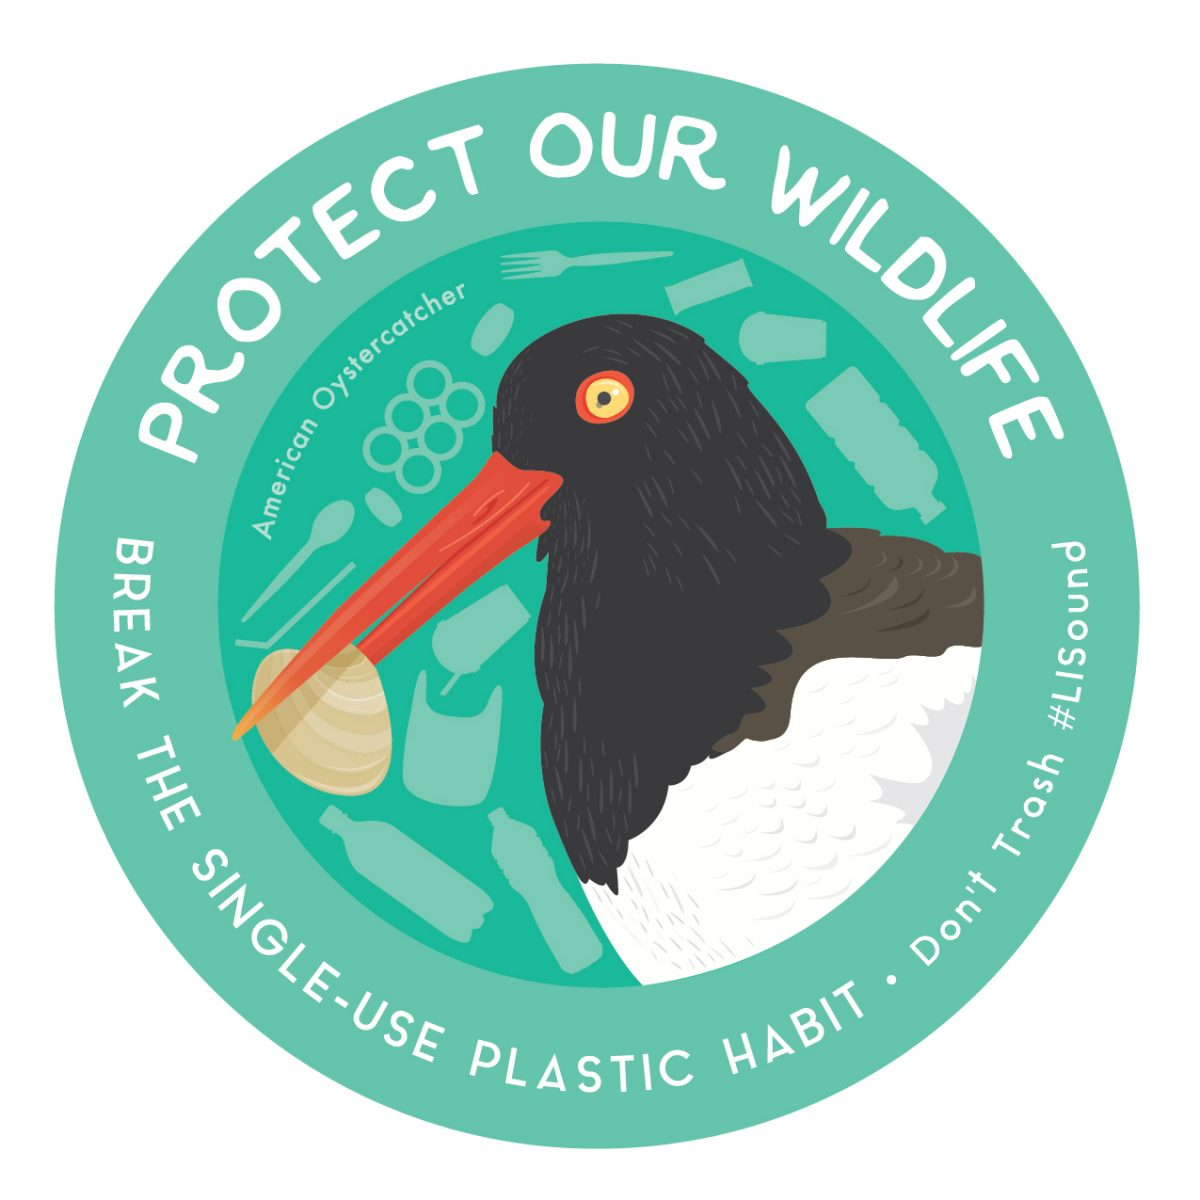 Protect Our Wildlife sticker with oystercatcher